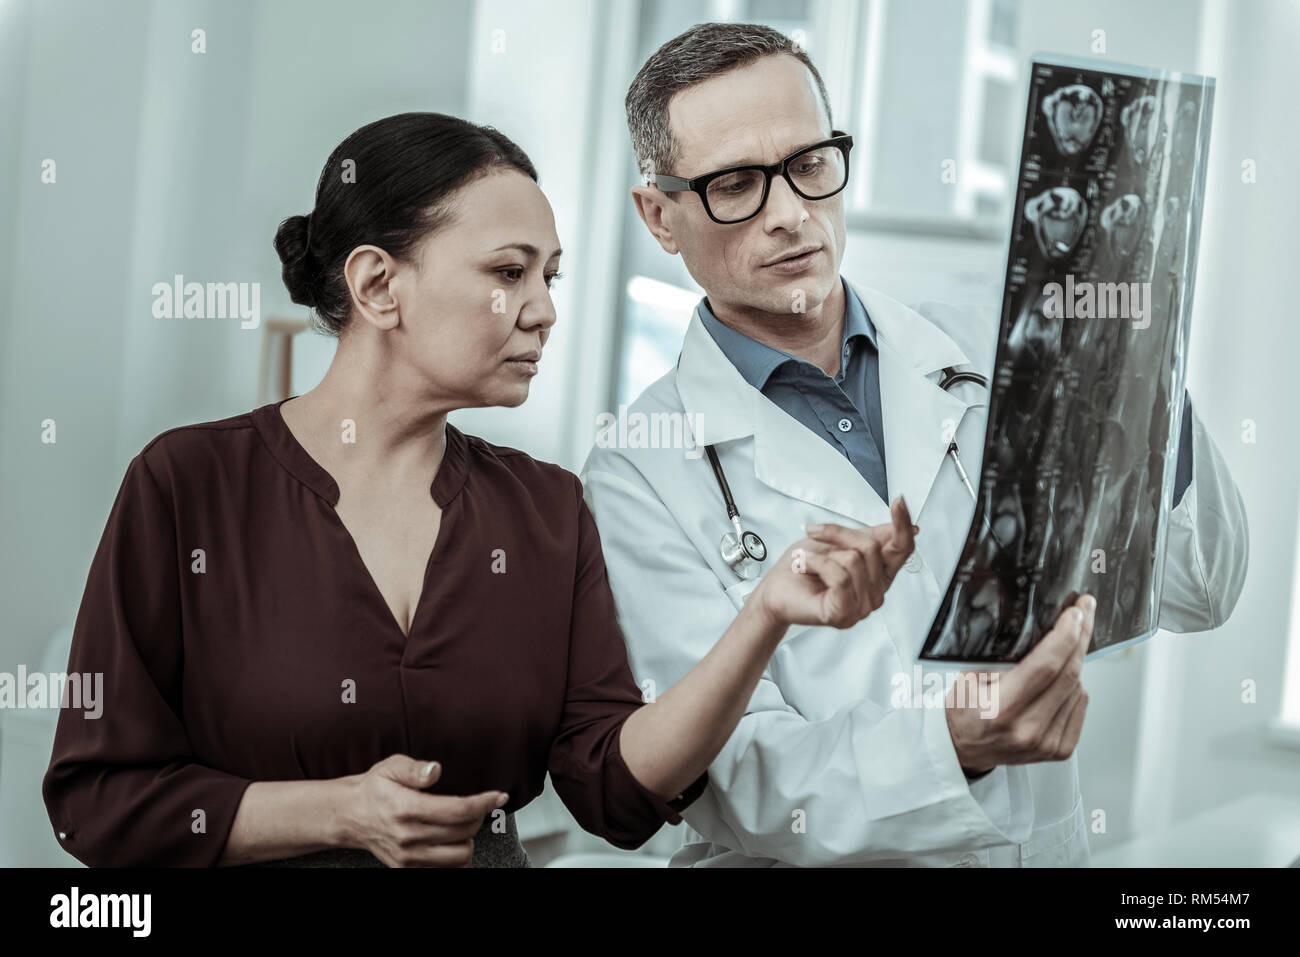 Attending doctor and his female patient staying nearby - Stock Image